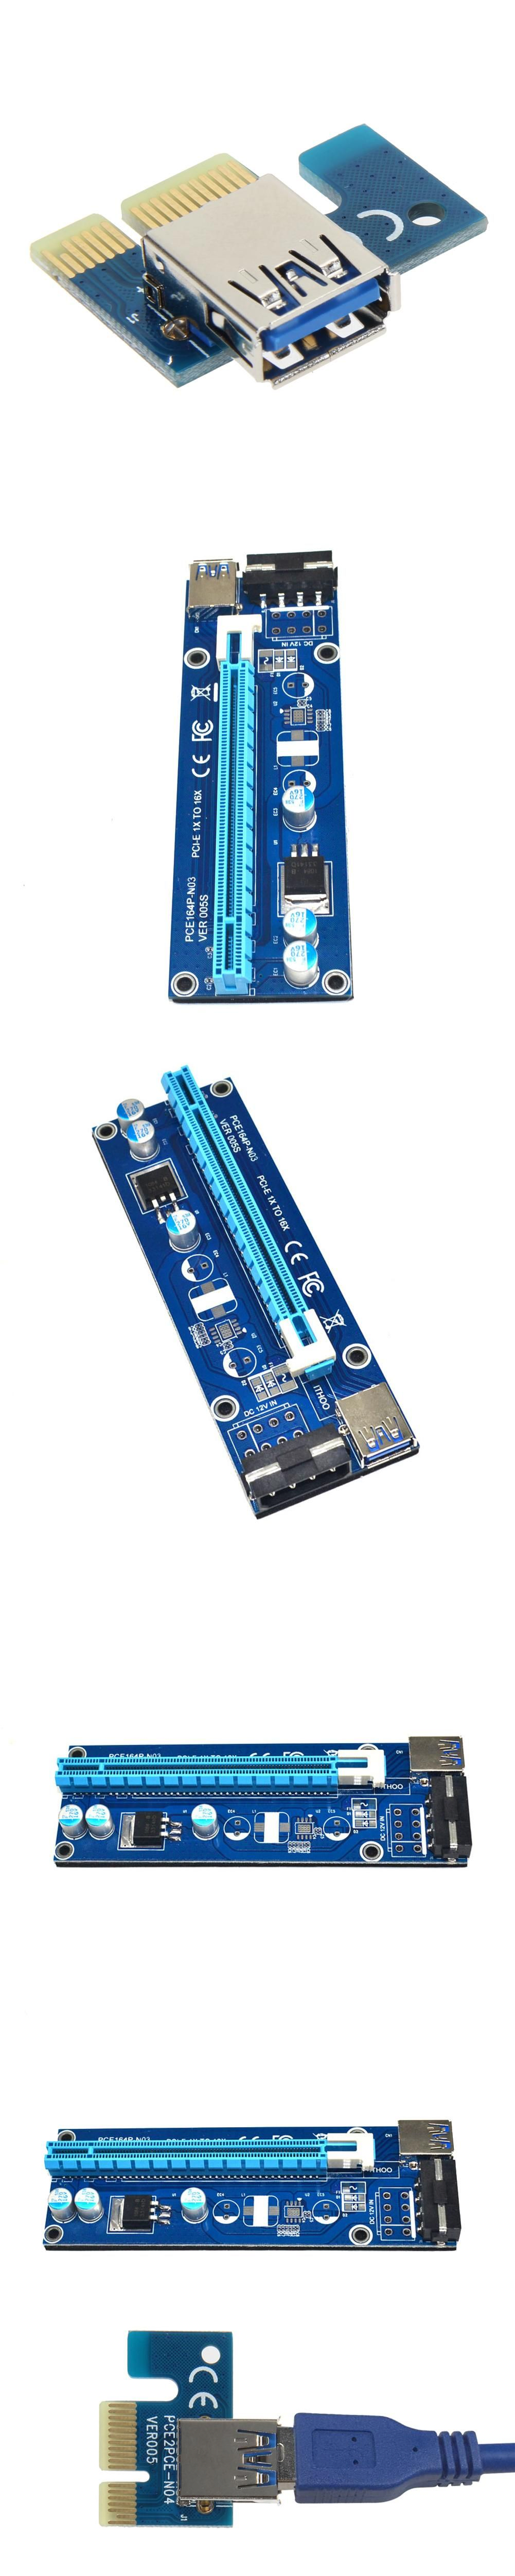 PCIe PCI-E PCI Express Riser Card 1x to 16x USB 3.0 Data Cable SATA ...